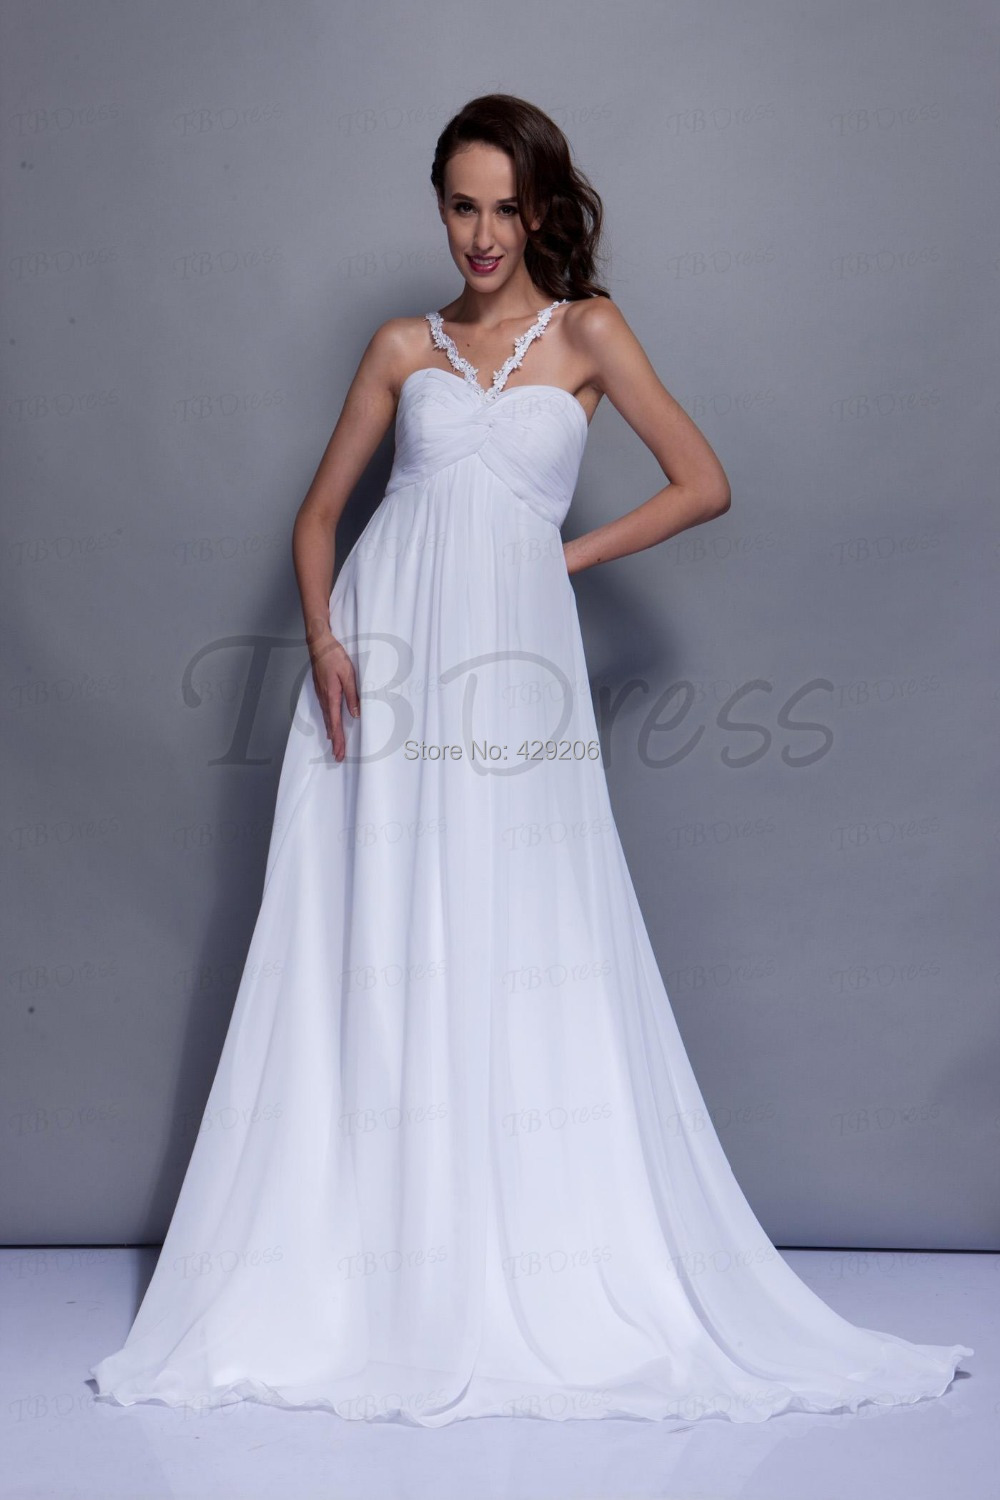 Simple informal wedding dresses promotion shop for for Simple casual wedding dresses